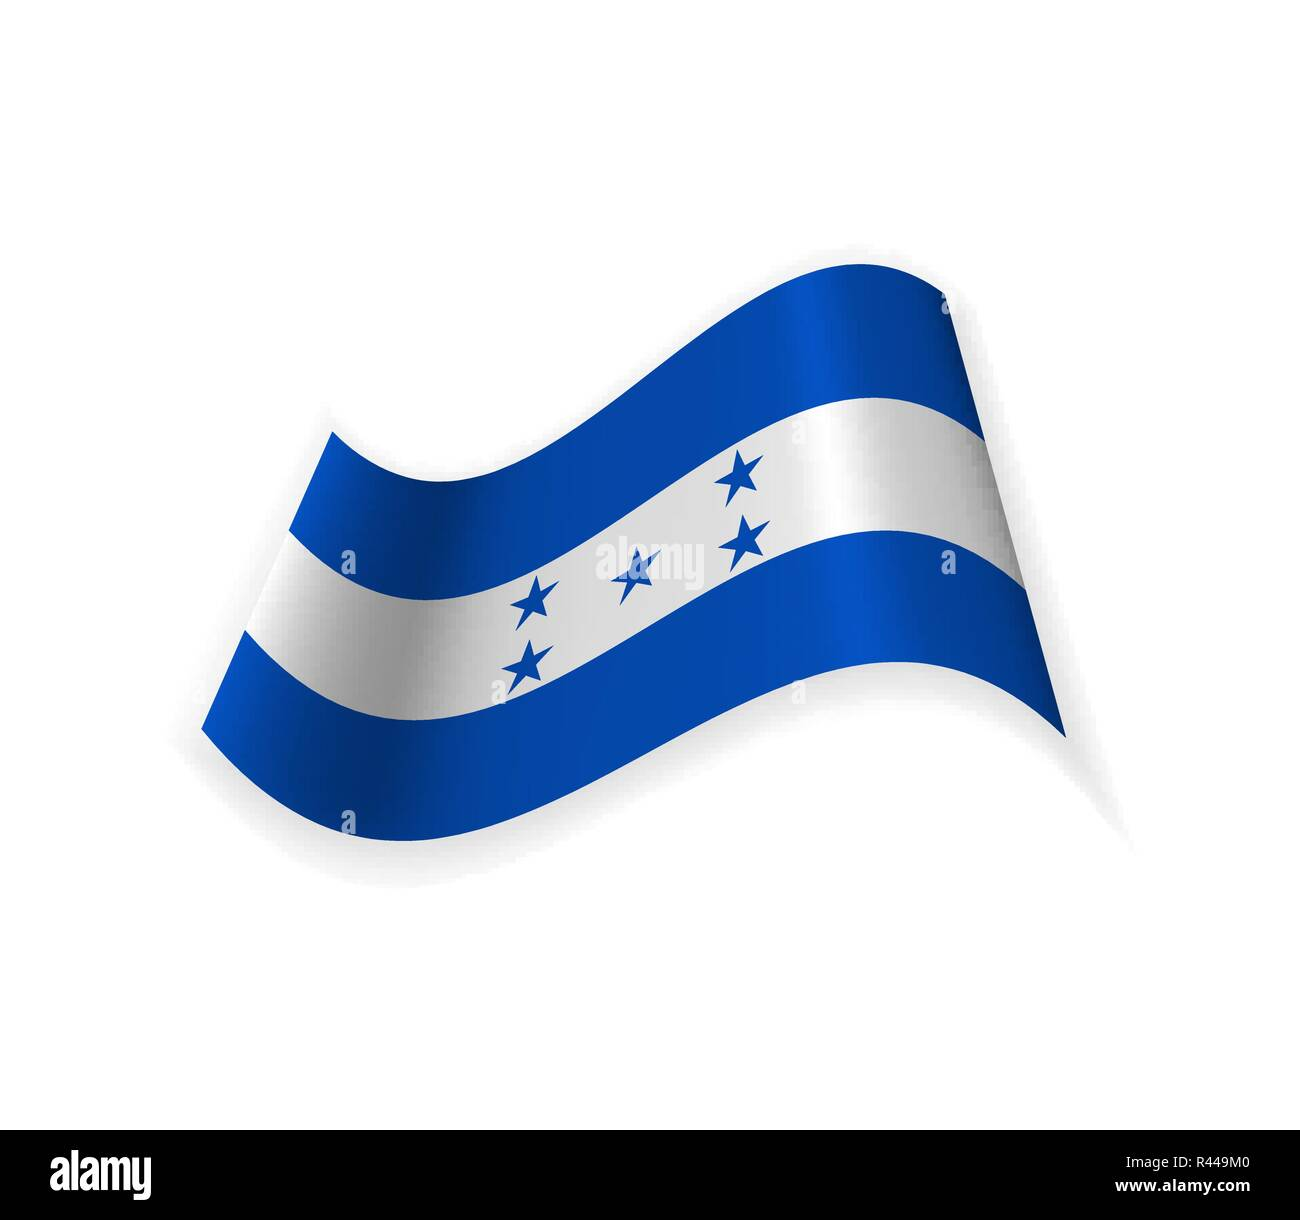 The Flag Of Honduras. Country in Central America. Vector illustration. Sign of the nation. Stock Vector